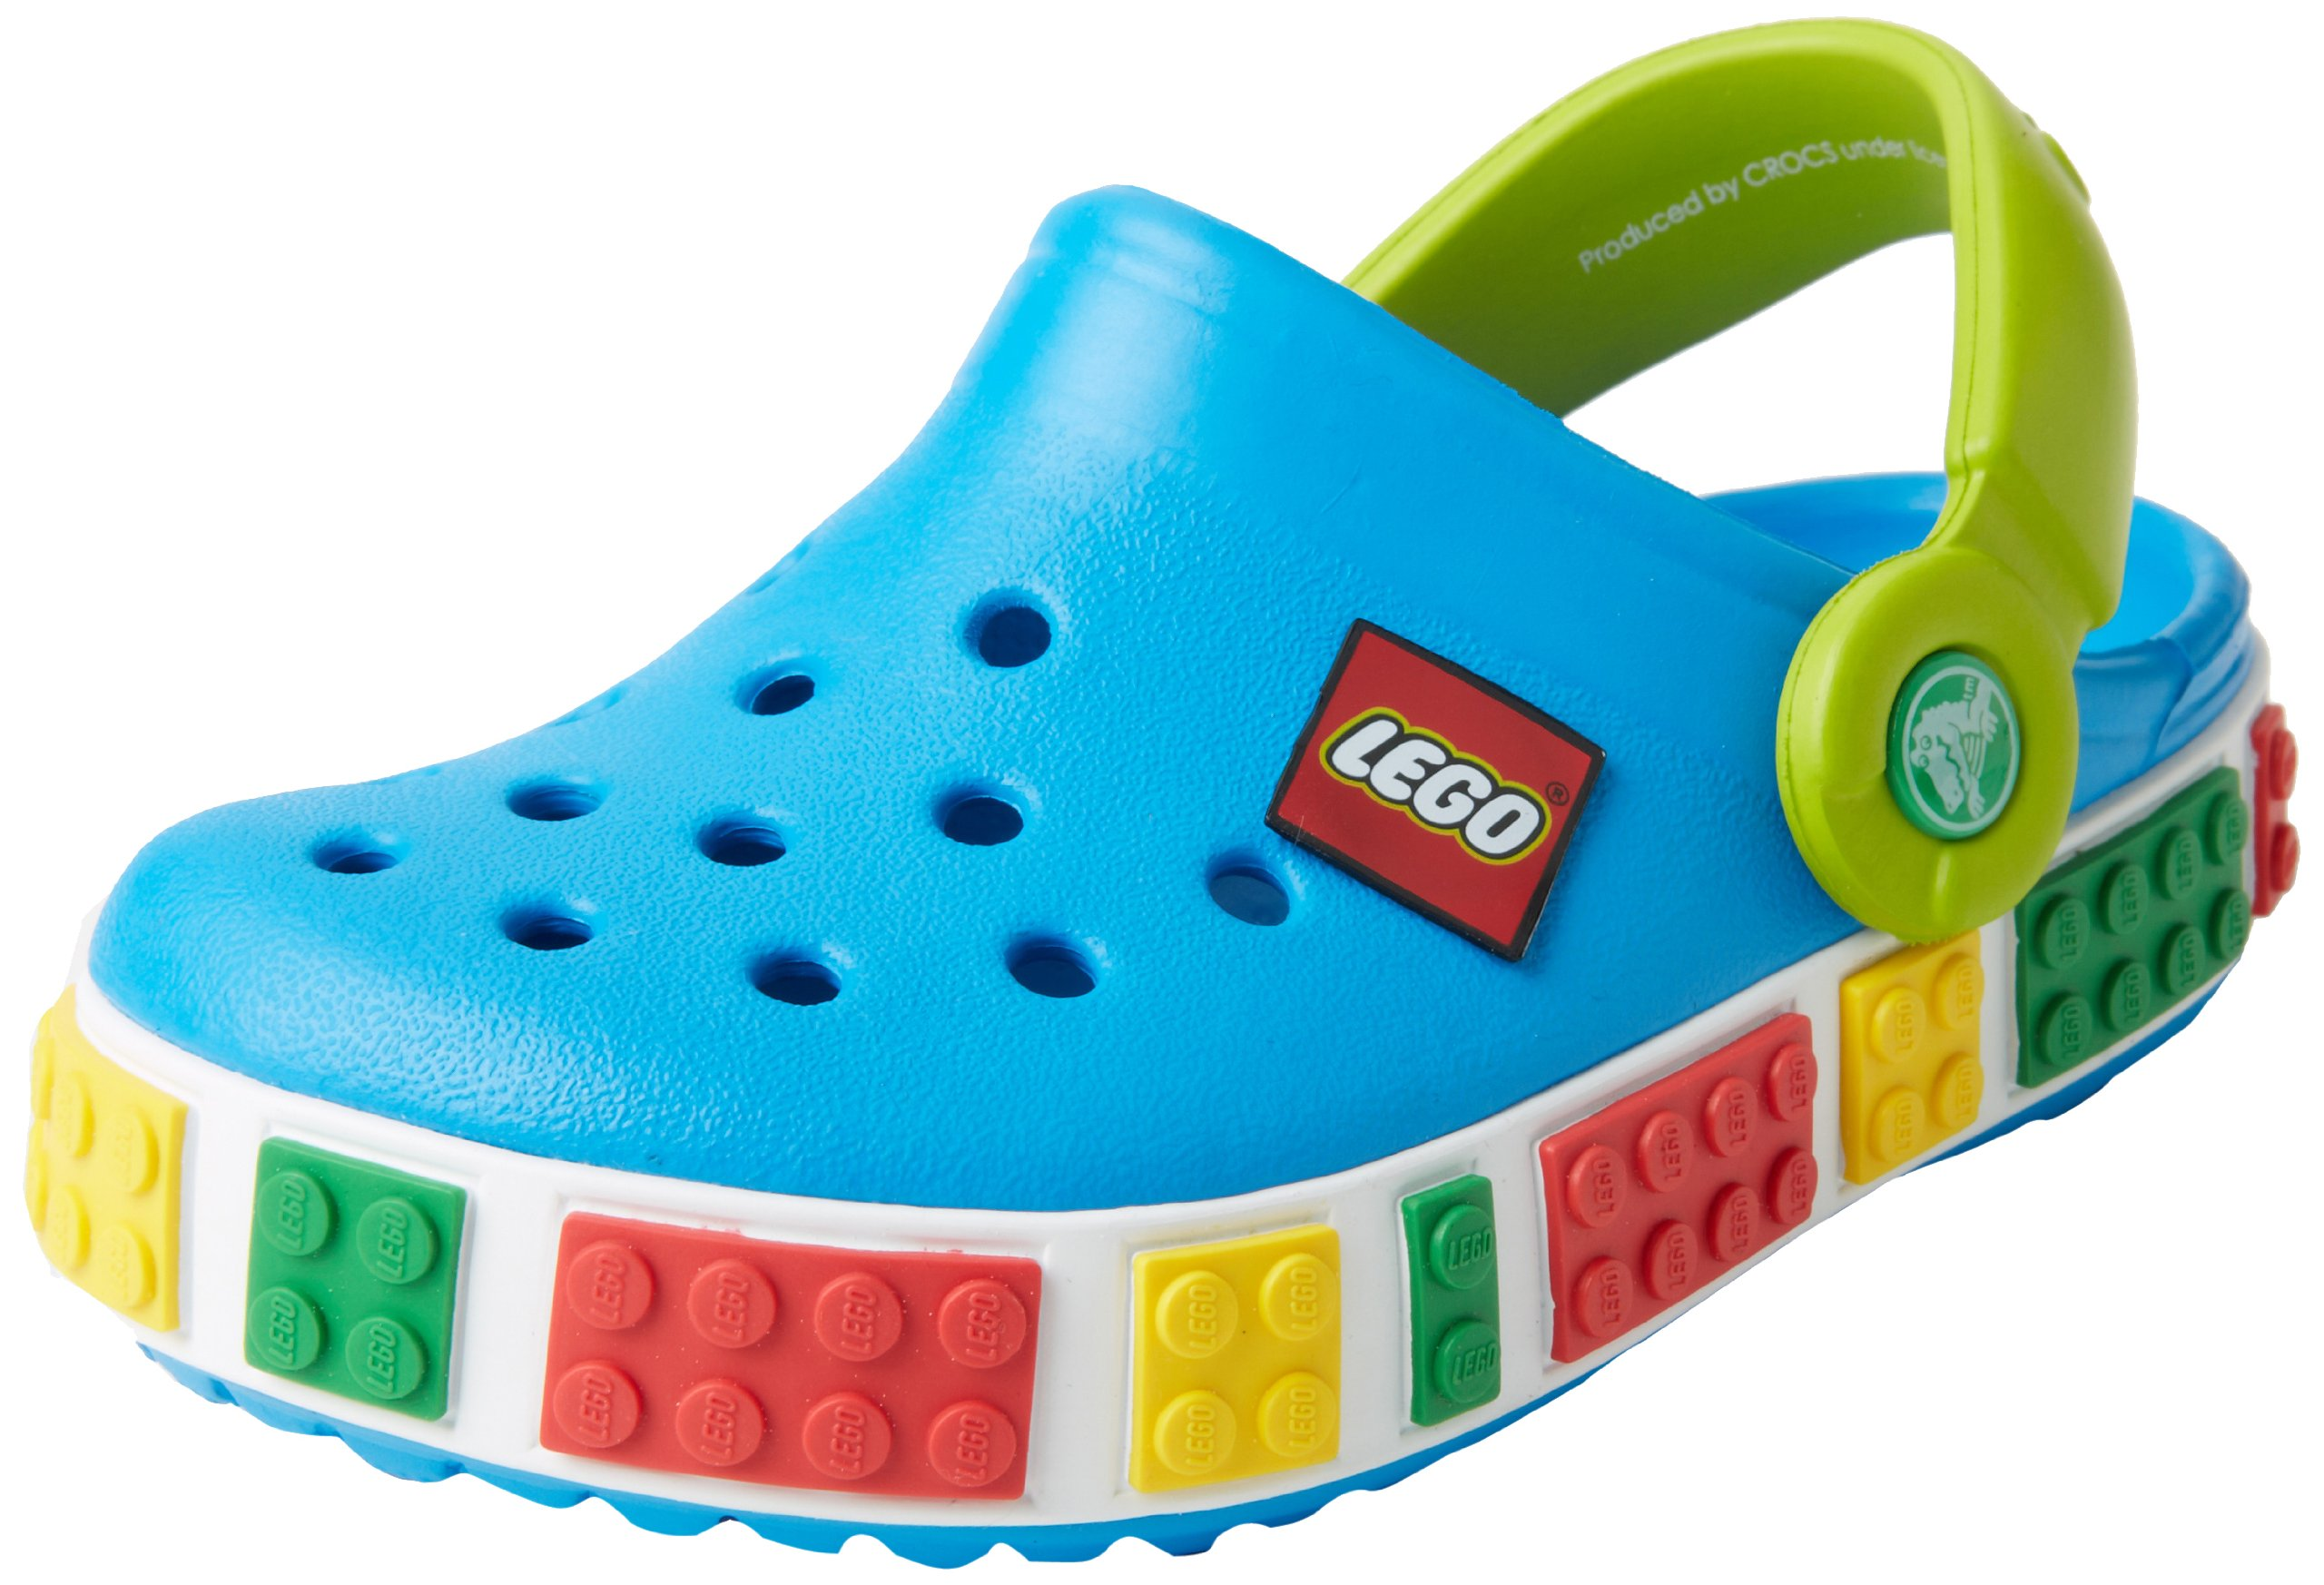 65afed8adc95 Buy Crocs Kids Crocband Mammoth Lego Clog Kids Mules And Clogs ...